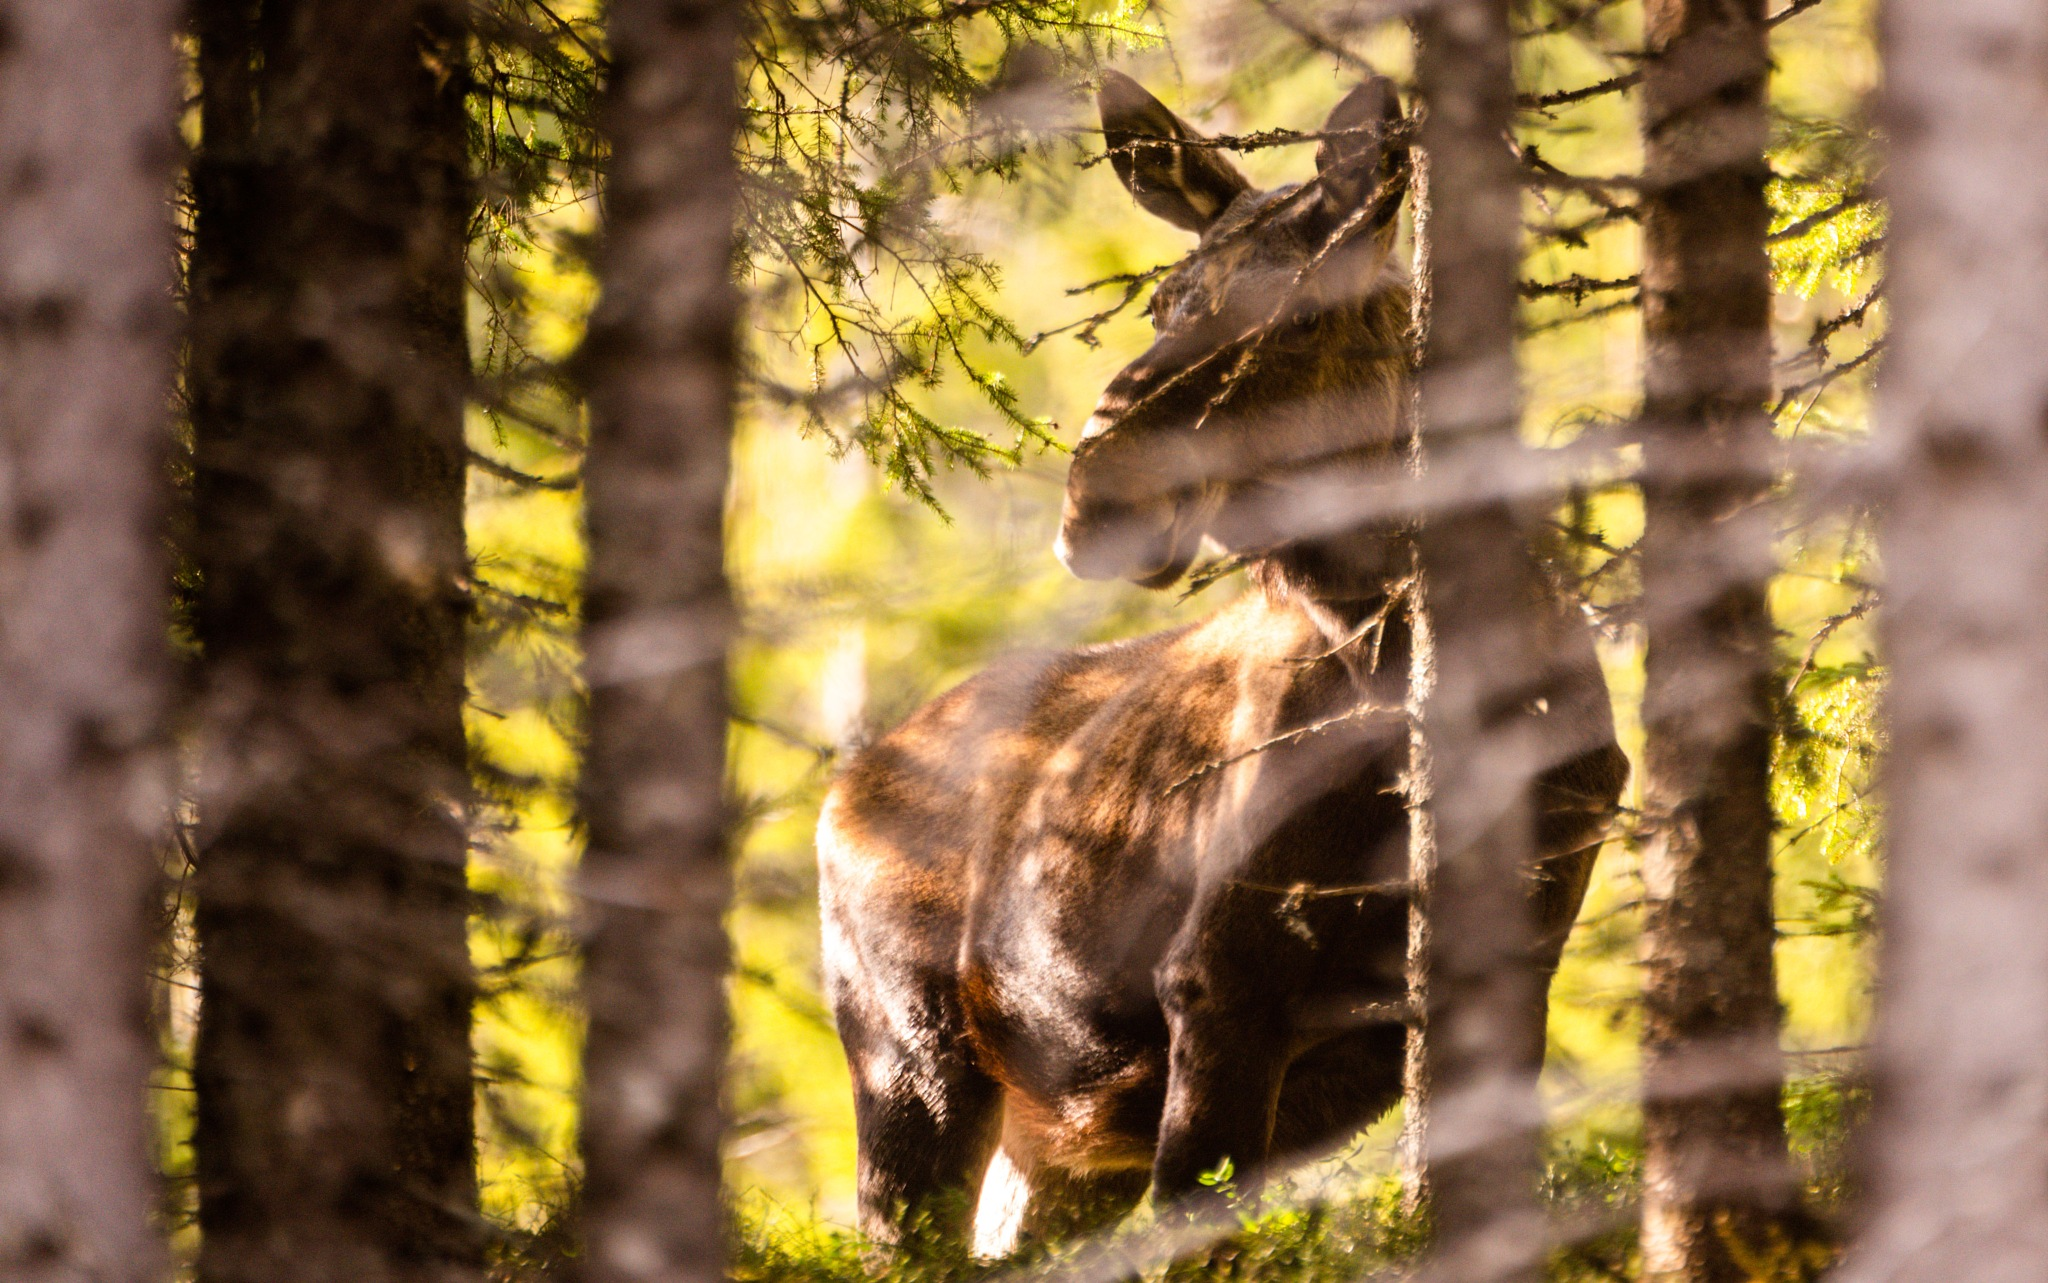 A moose in the forest by E Pedersen